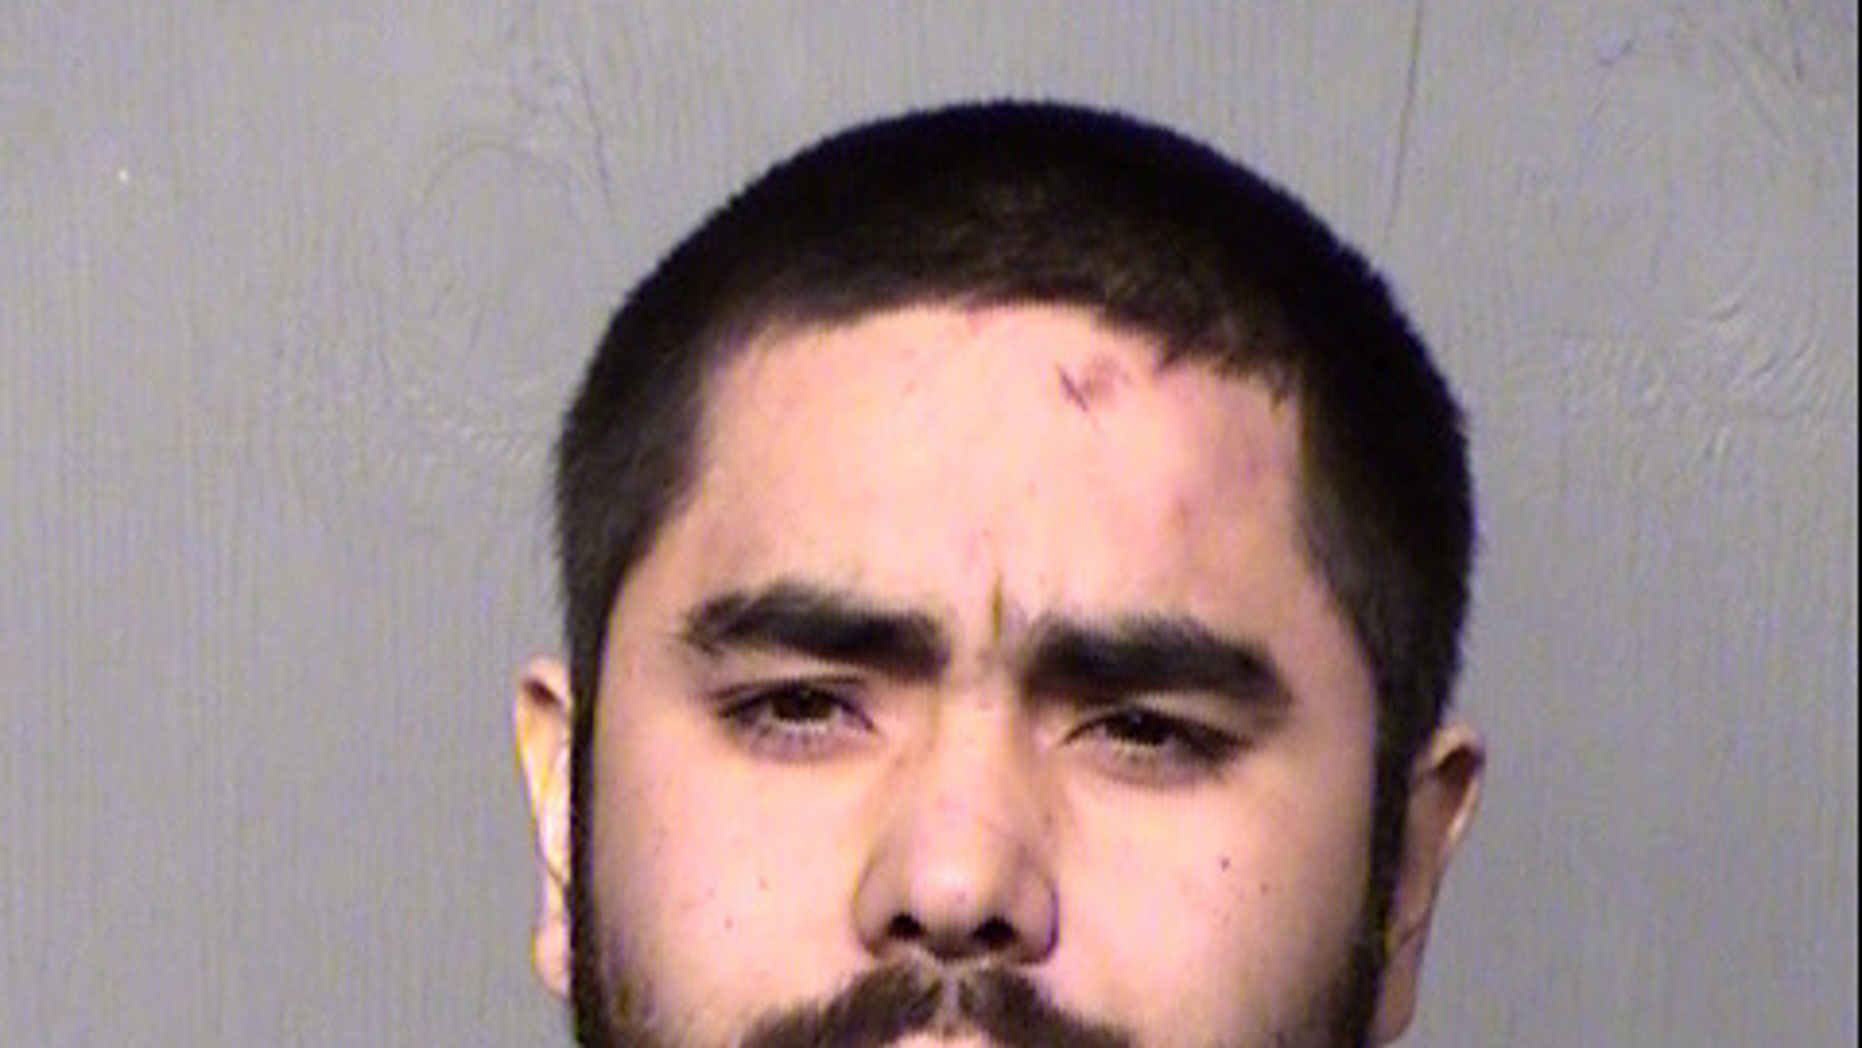 Fernando Acosta, 25, was arrested Friday, charged in connection with the stabbing death of a female passenger after a car crash, authorities say.